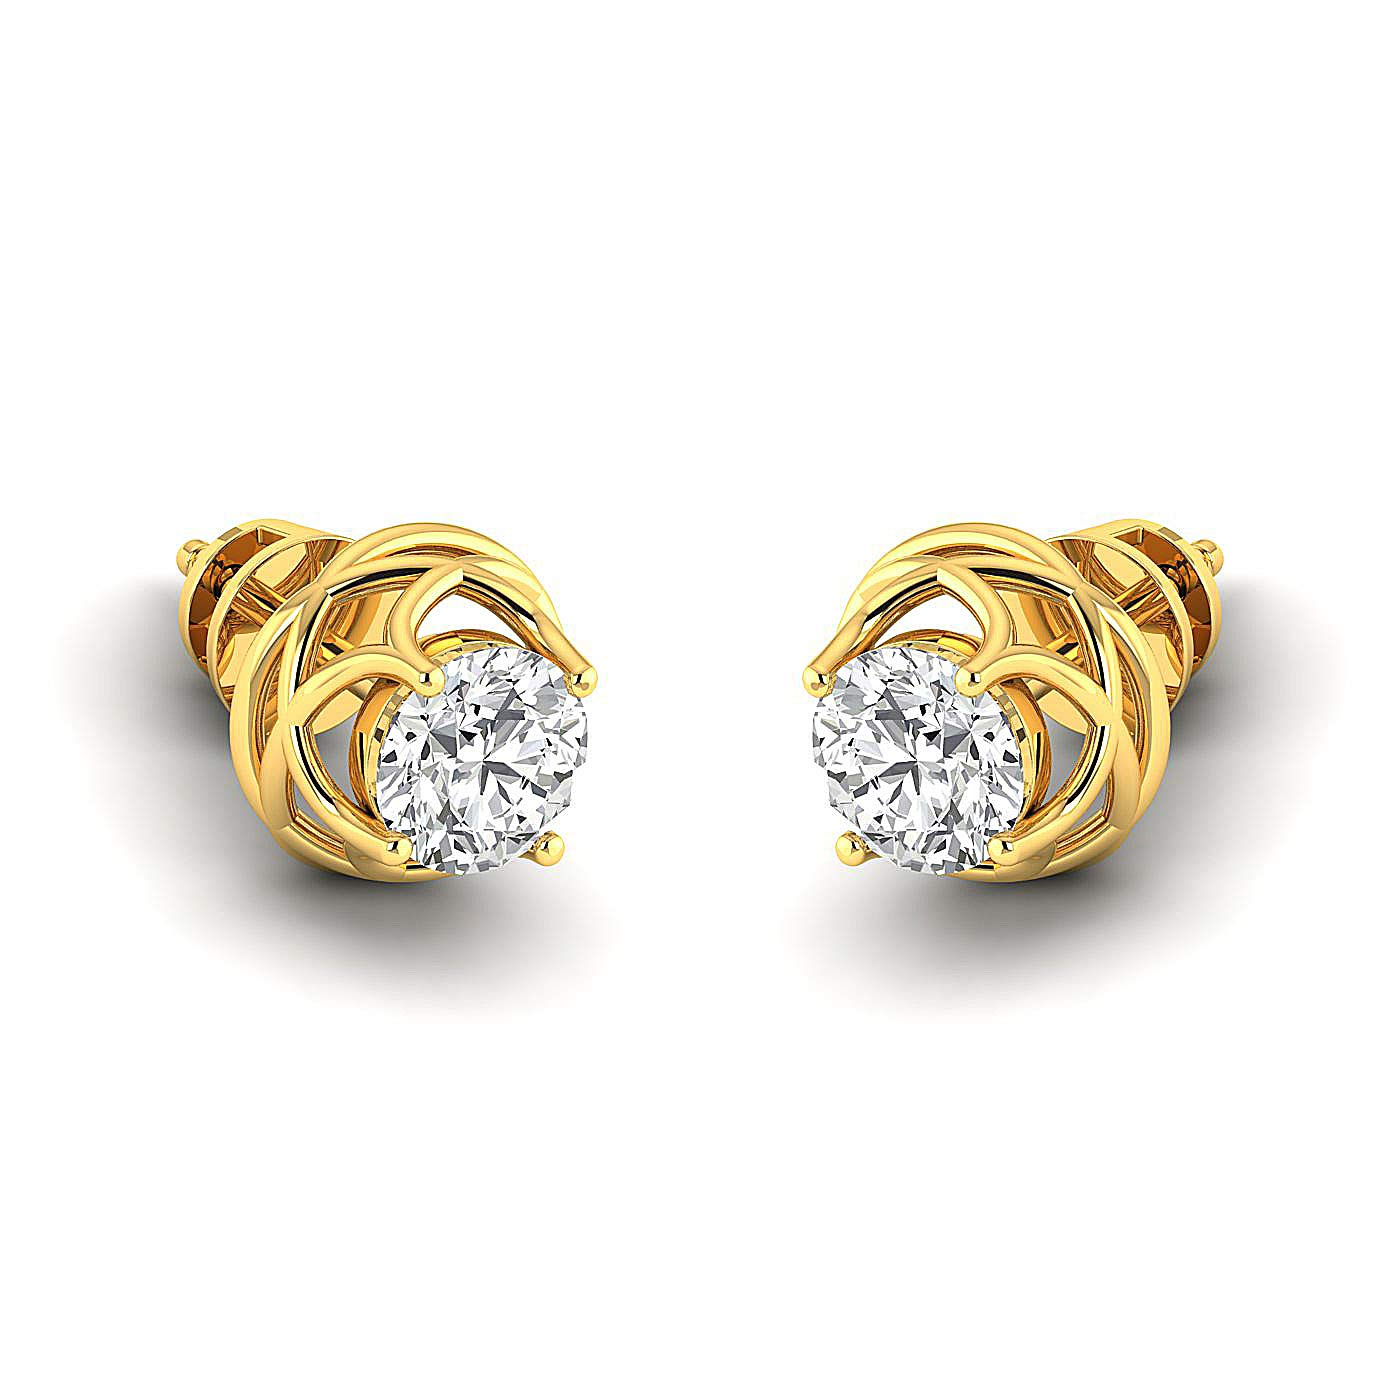 Earring Studs 0.3 to 4 Carat Moissanite Stud Earrings 18K yellow-gold GH//VVS Round Brilliant Stud Earrings for Women perfect Jewelry Gifts for Women Teen Girls